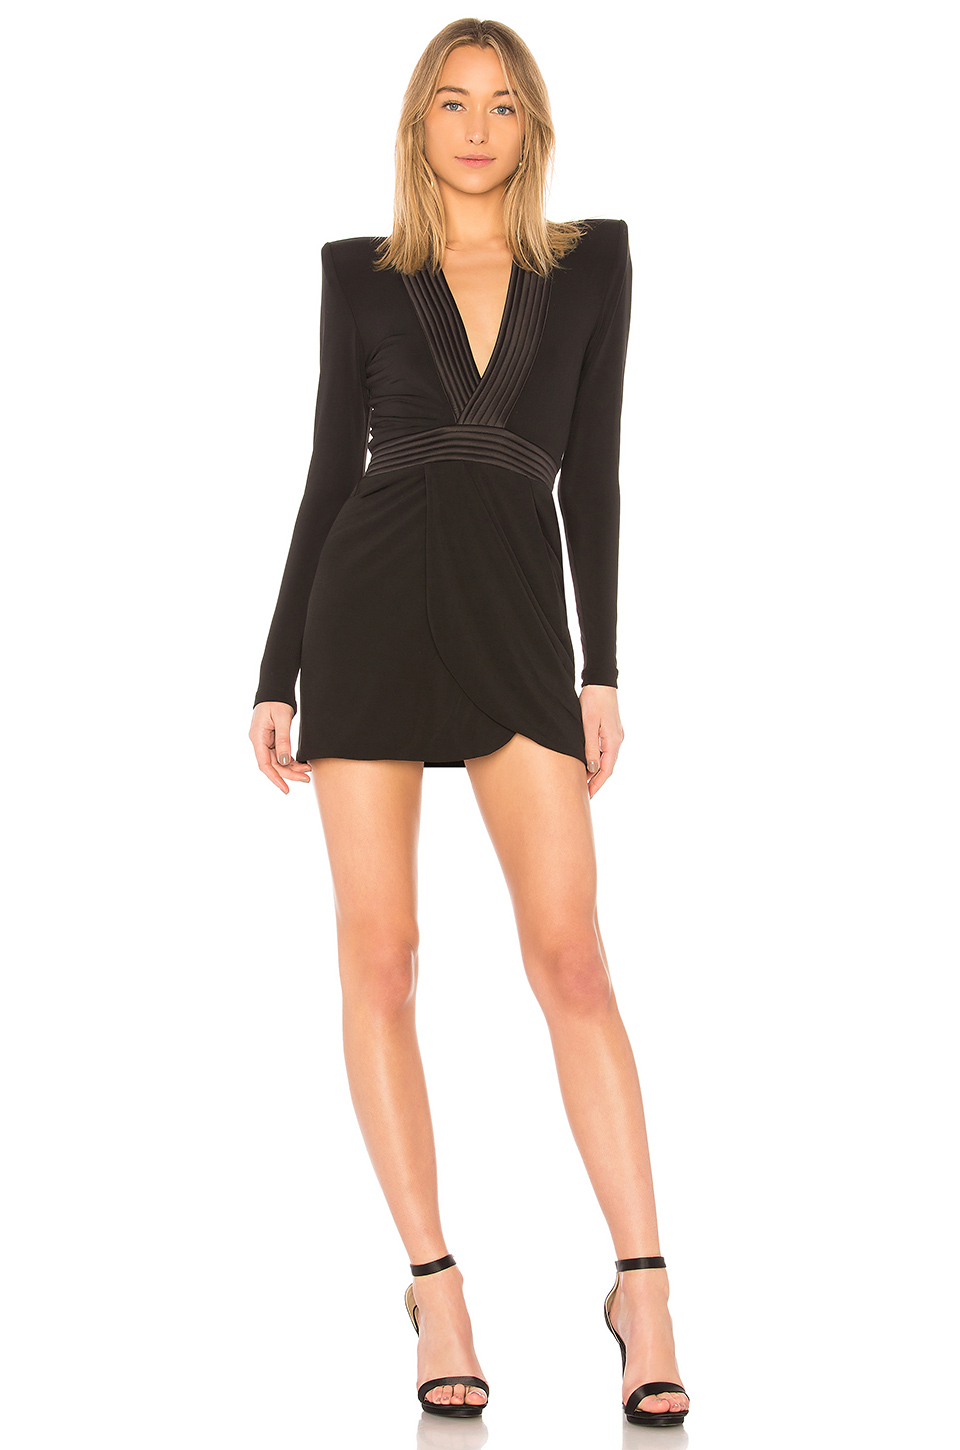 Zhivago Eye of Horus Mini Dress in Black